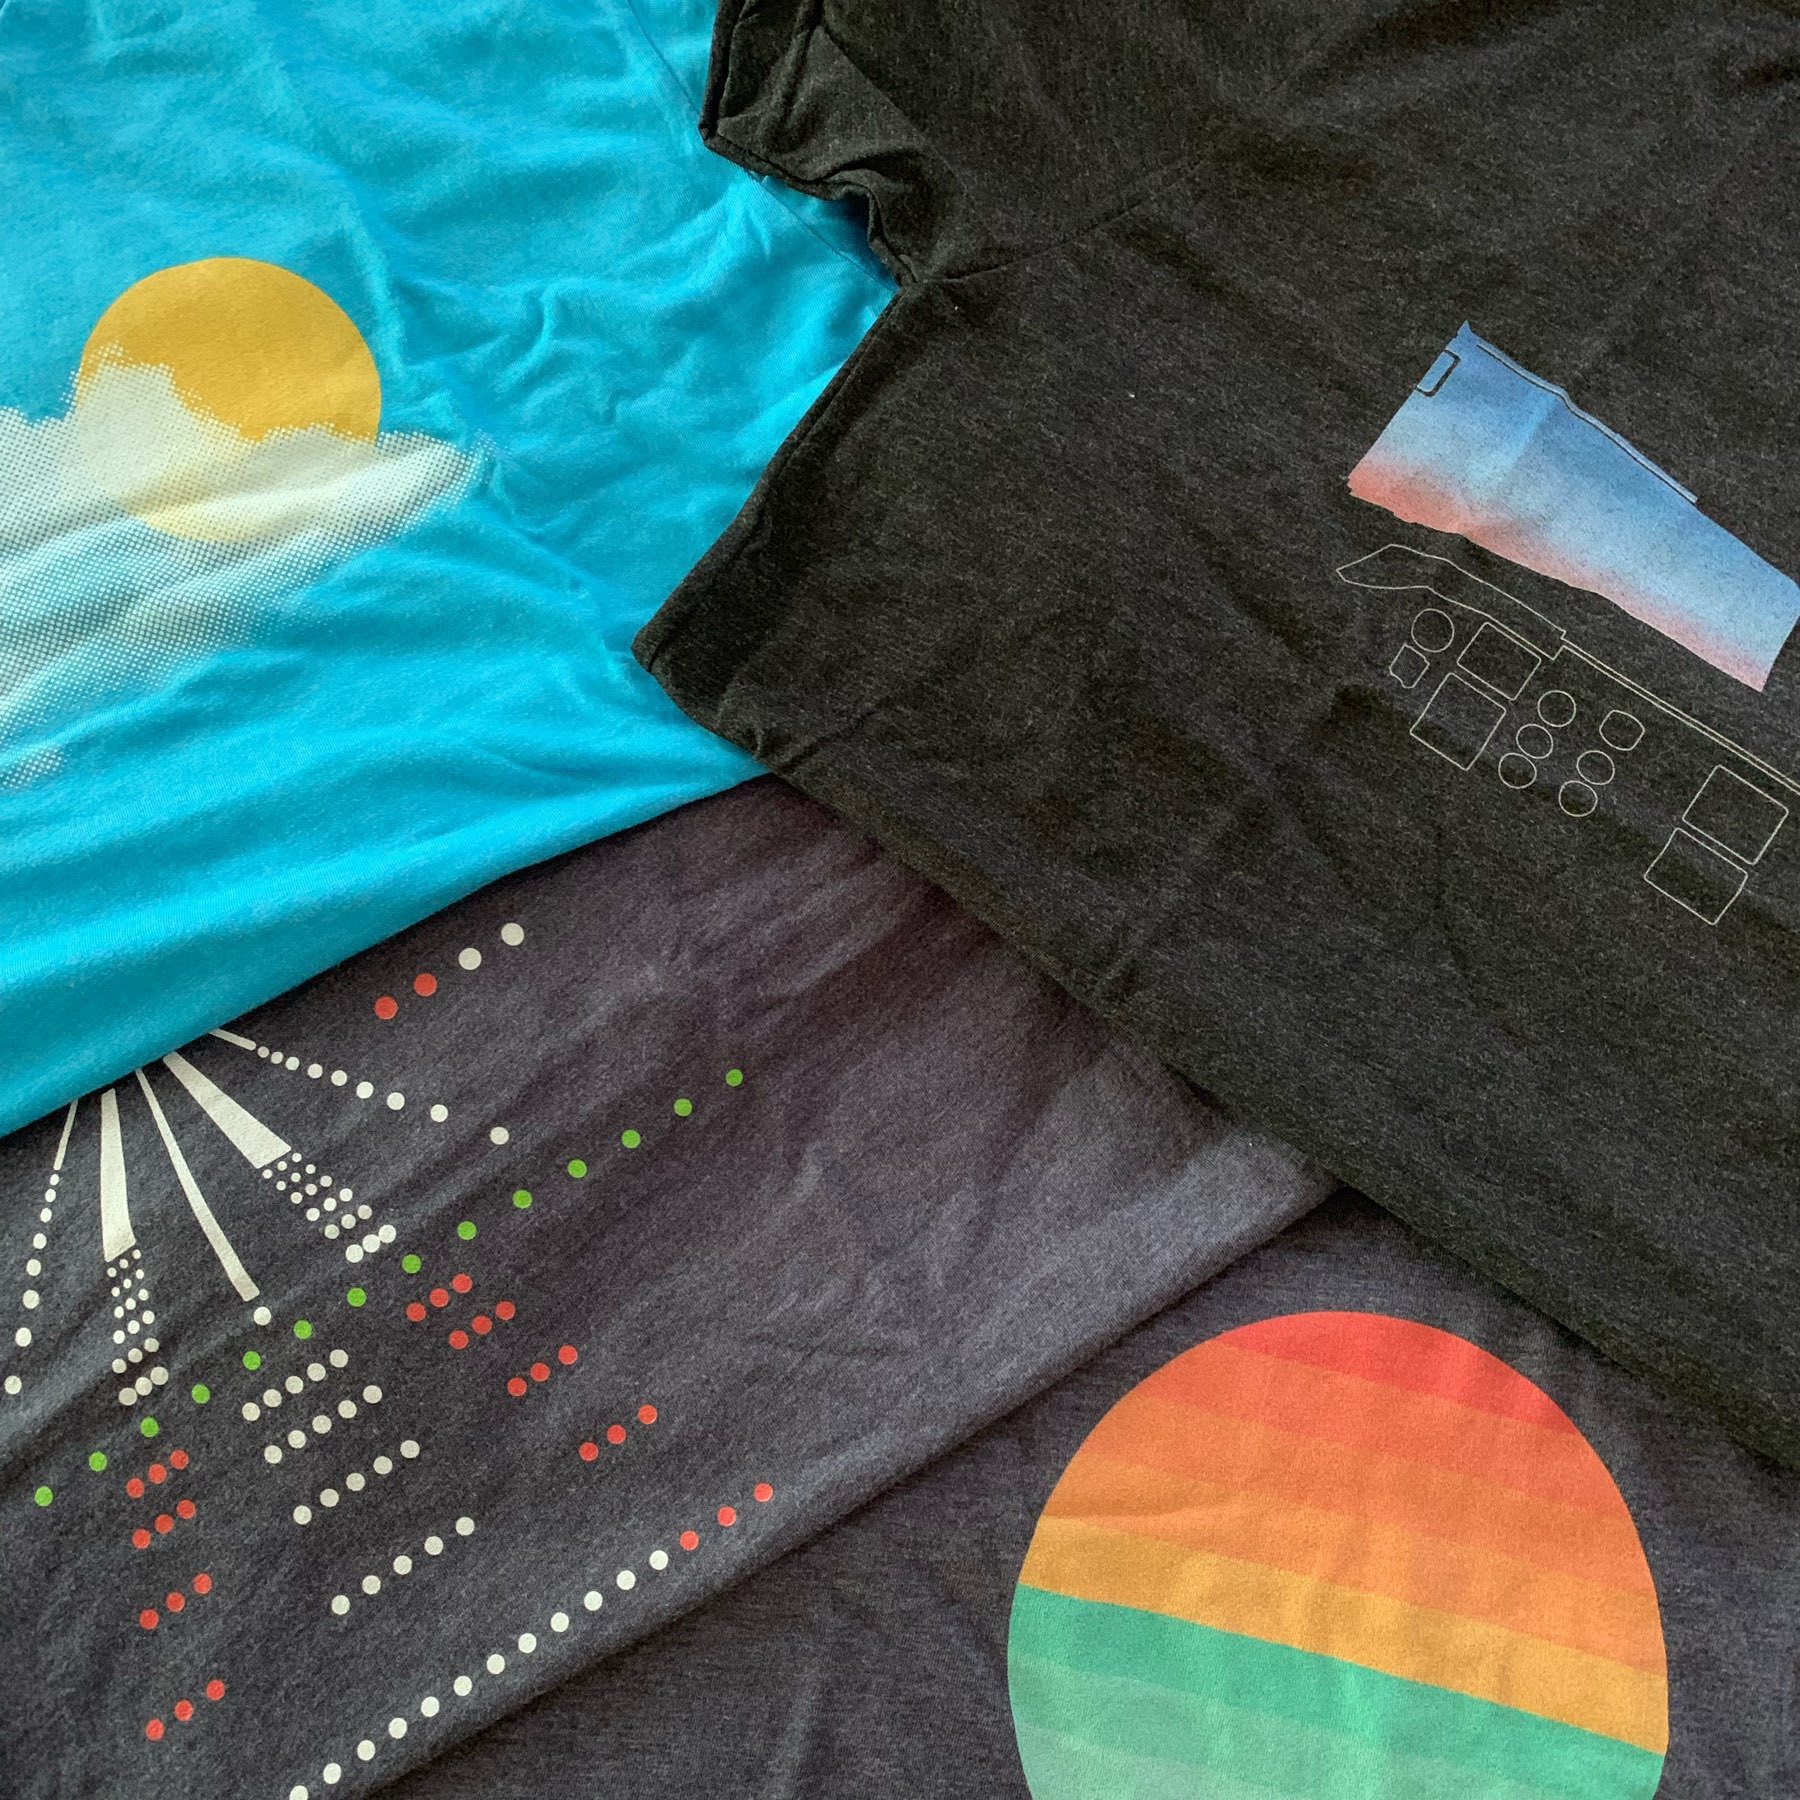 New shirts laid out on a flat surface.